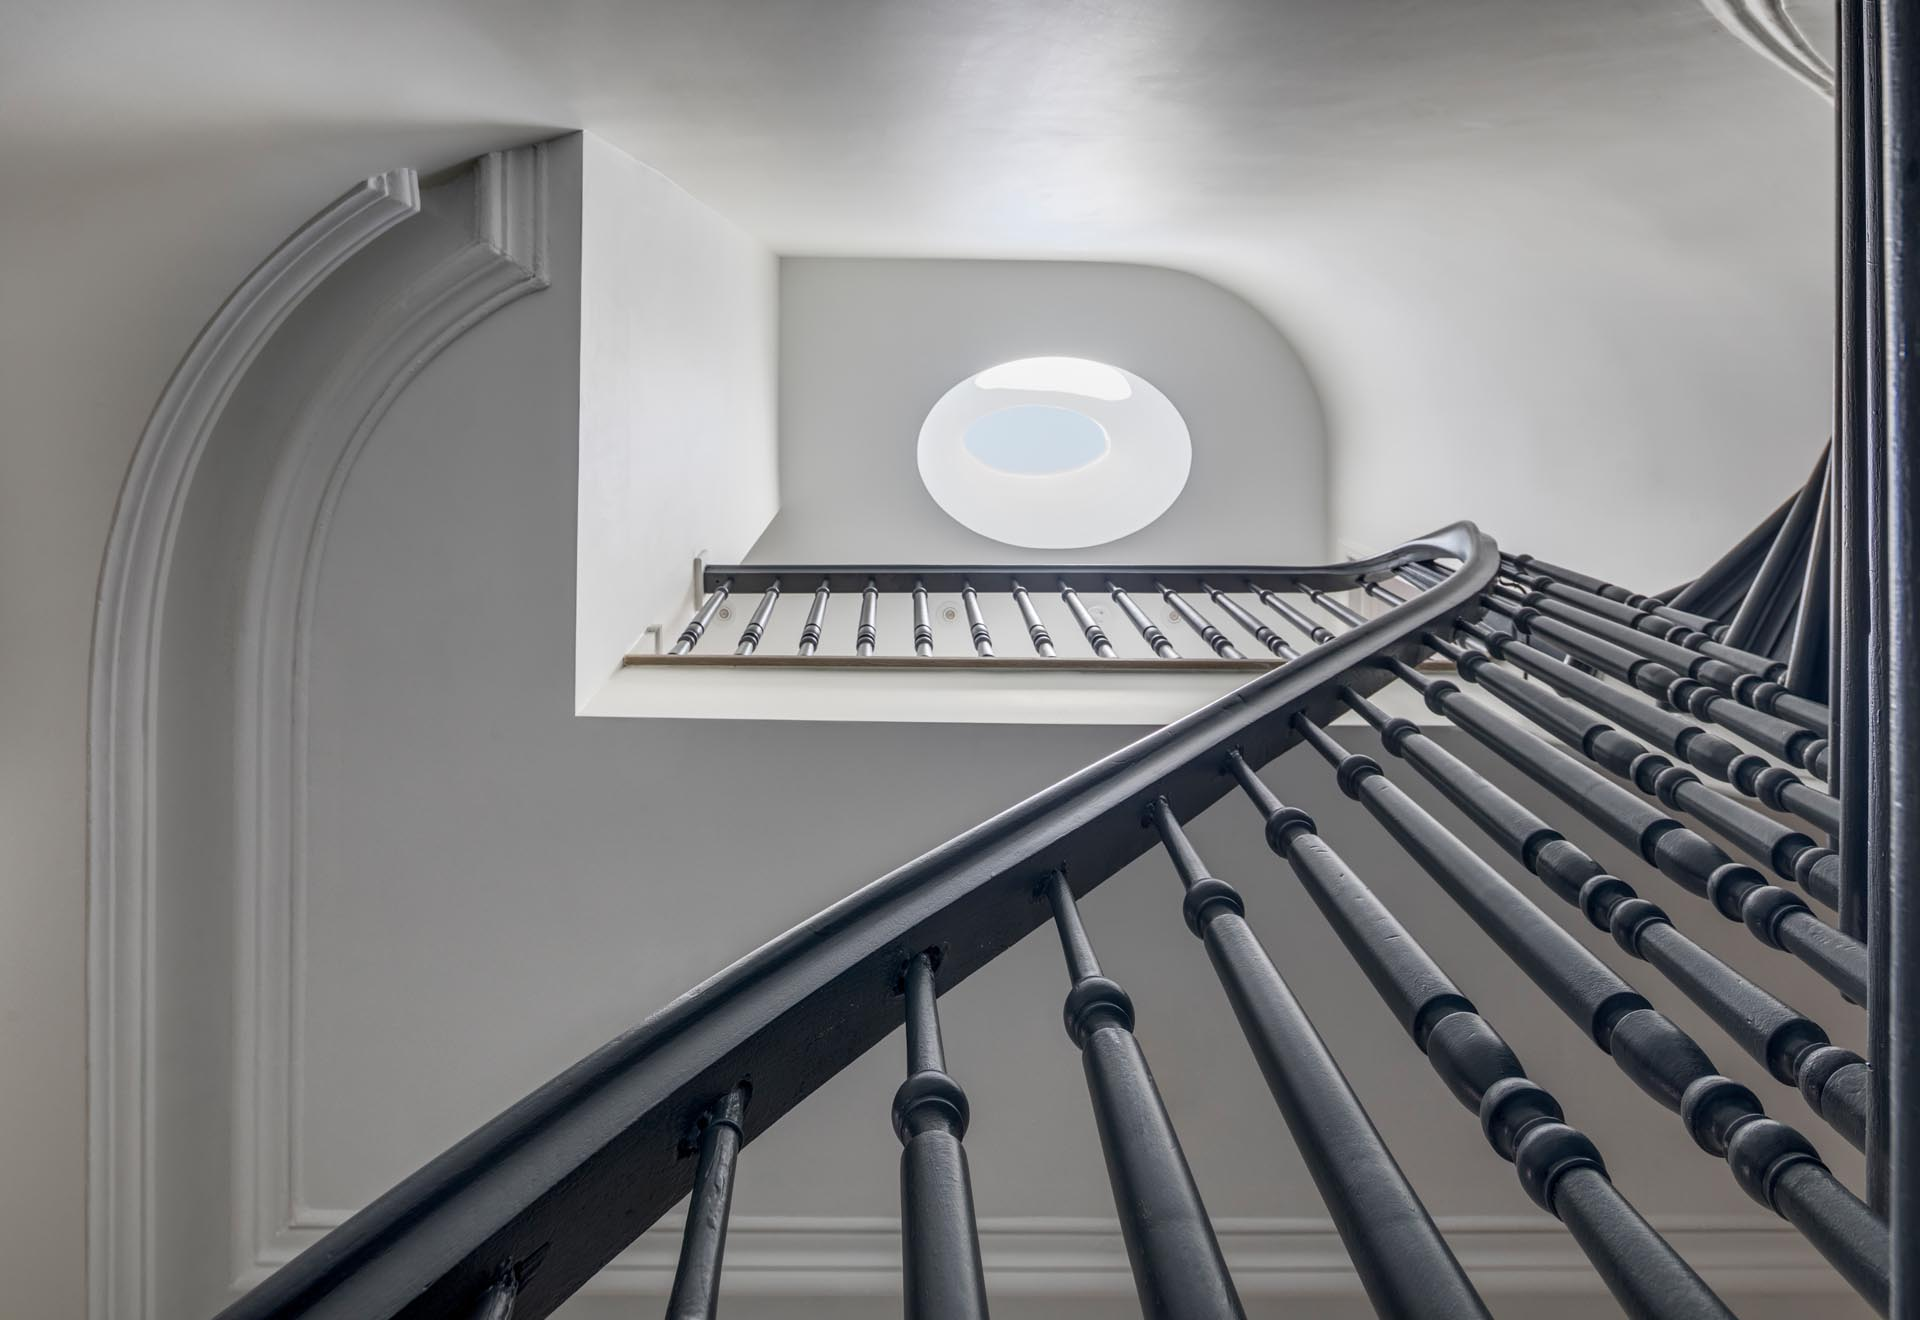 A staircase with a grey handrail and a skylight.